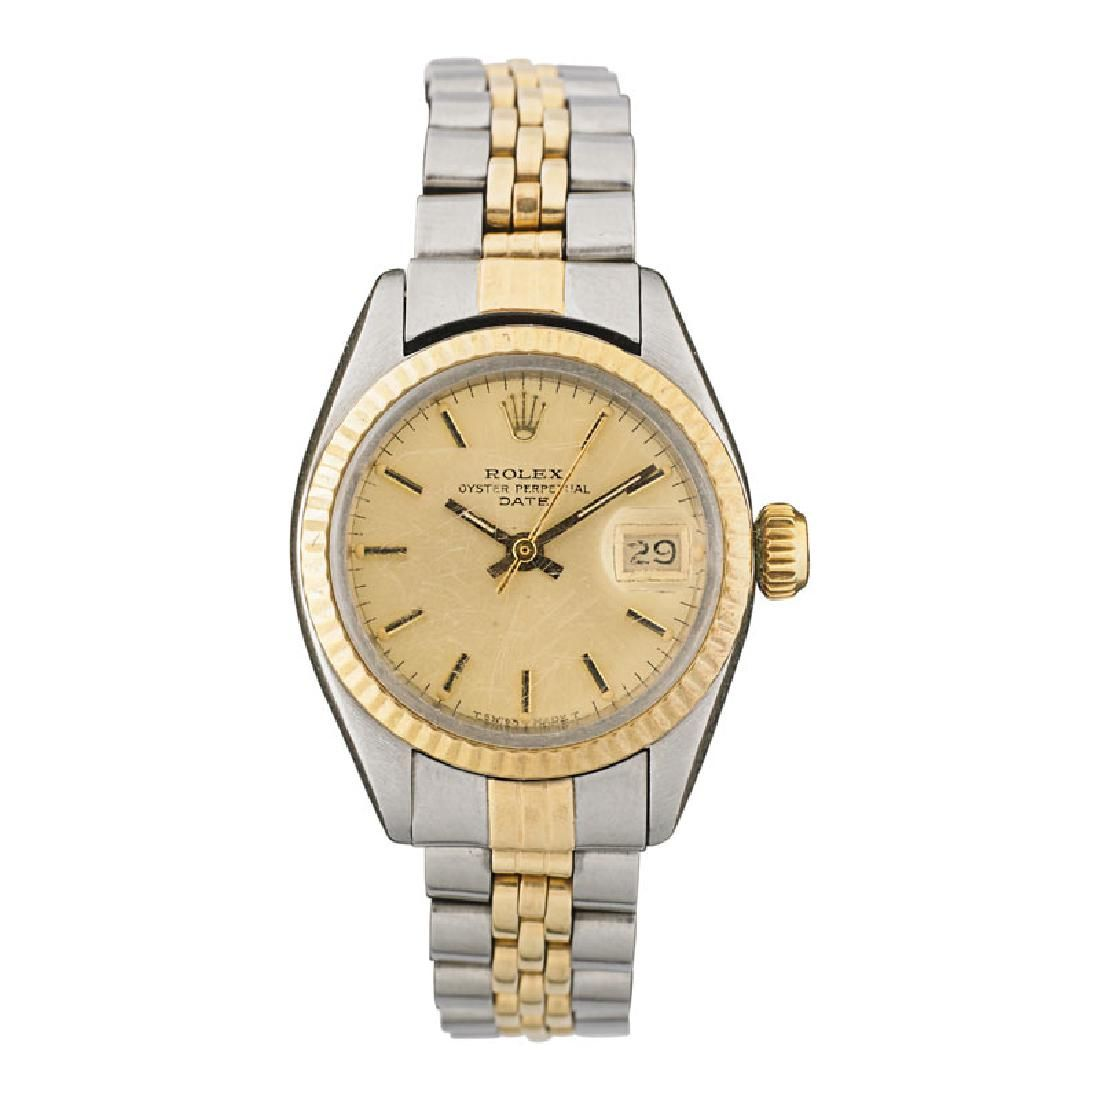 LADY'S ROLEX TWO-TONE OYSTER PERPETUAL DATE WATCH